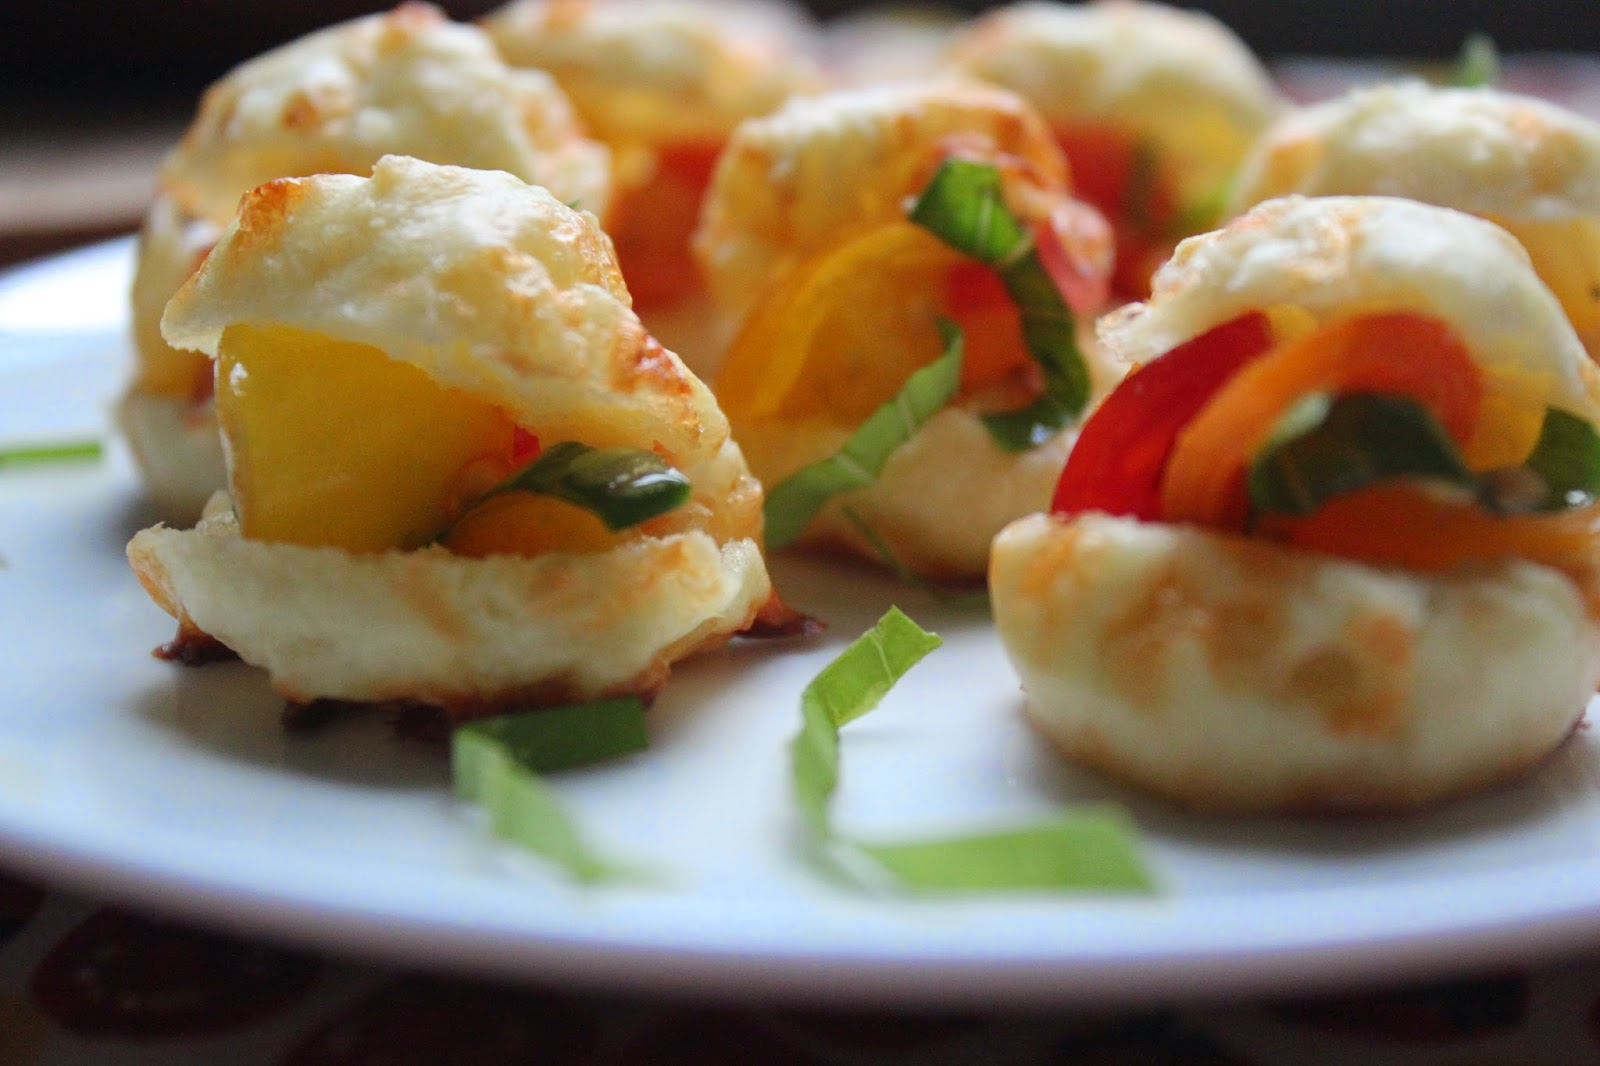 Mini profiteroles with tomatoes and basil